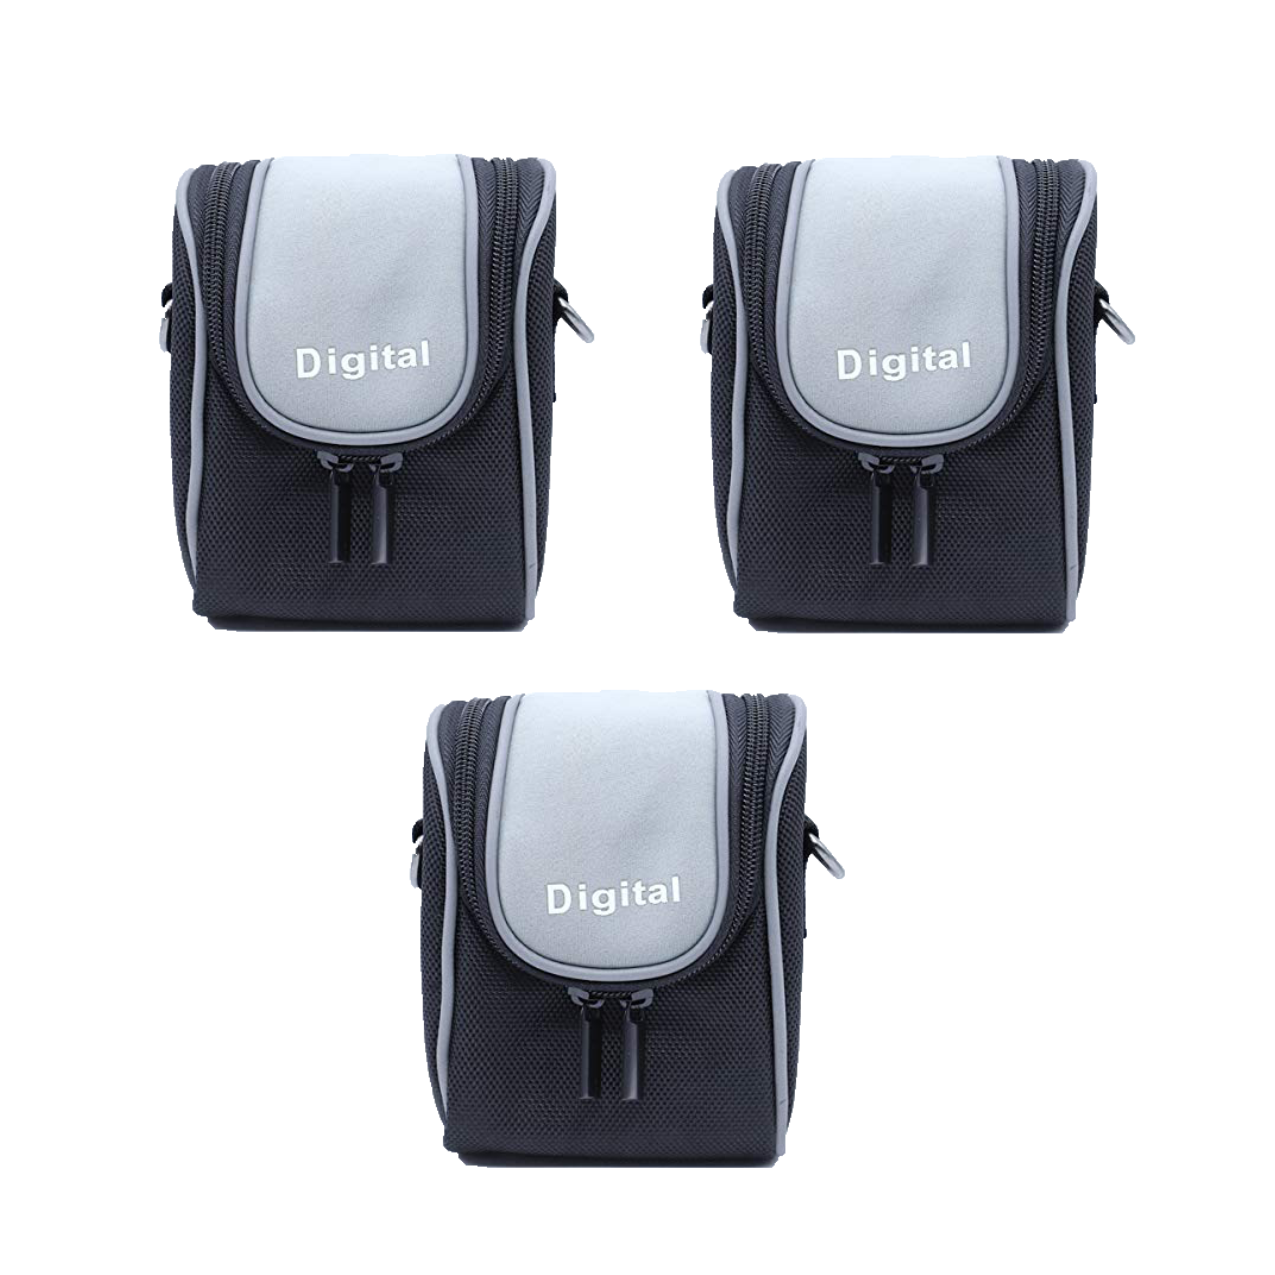 Solibag Durable Camera Case, Black -4004-2321 Pack Of 3Pcs Camcorder & Camera Accessories Camera Bags